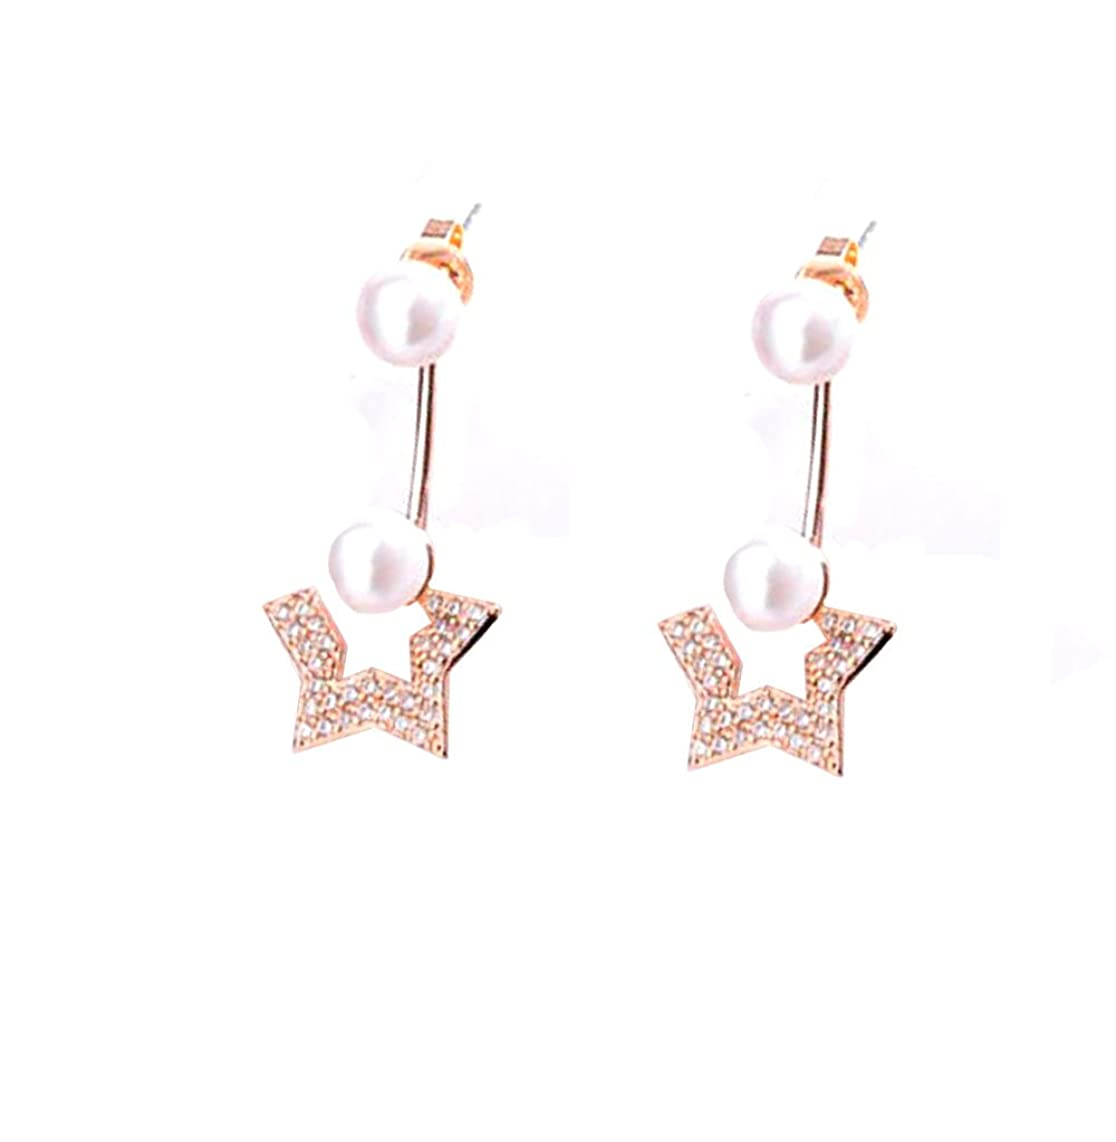 Ostory star pearl diamond ear Cuffs Wrap Dangle Drop Tassel Stud Earrings hoop earrings with cubic zirconia